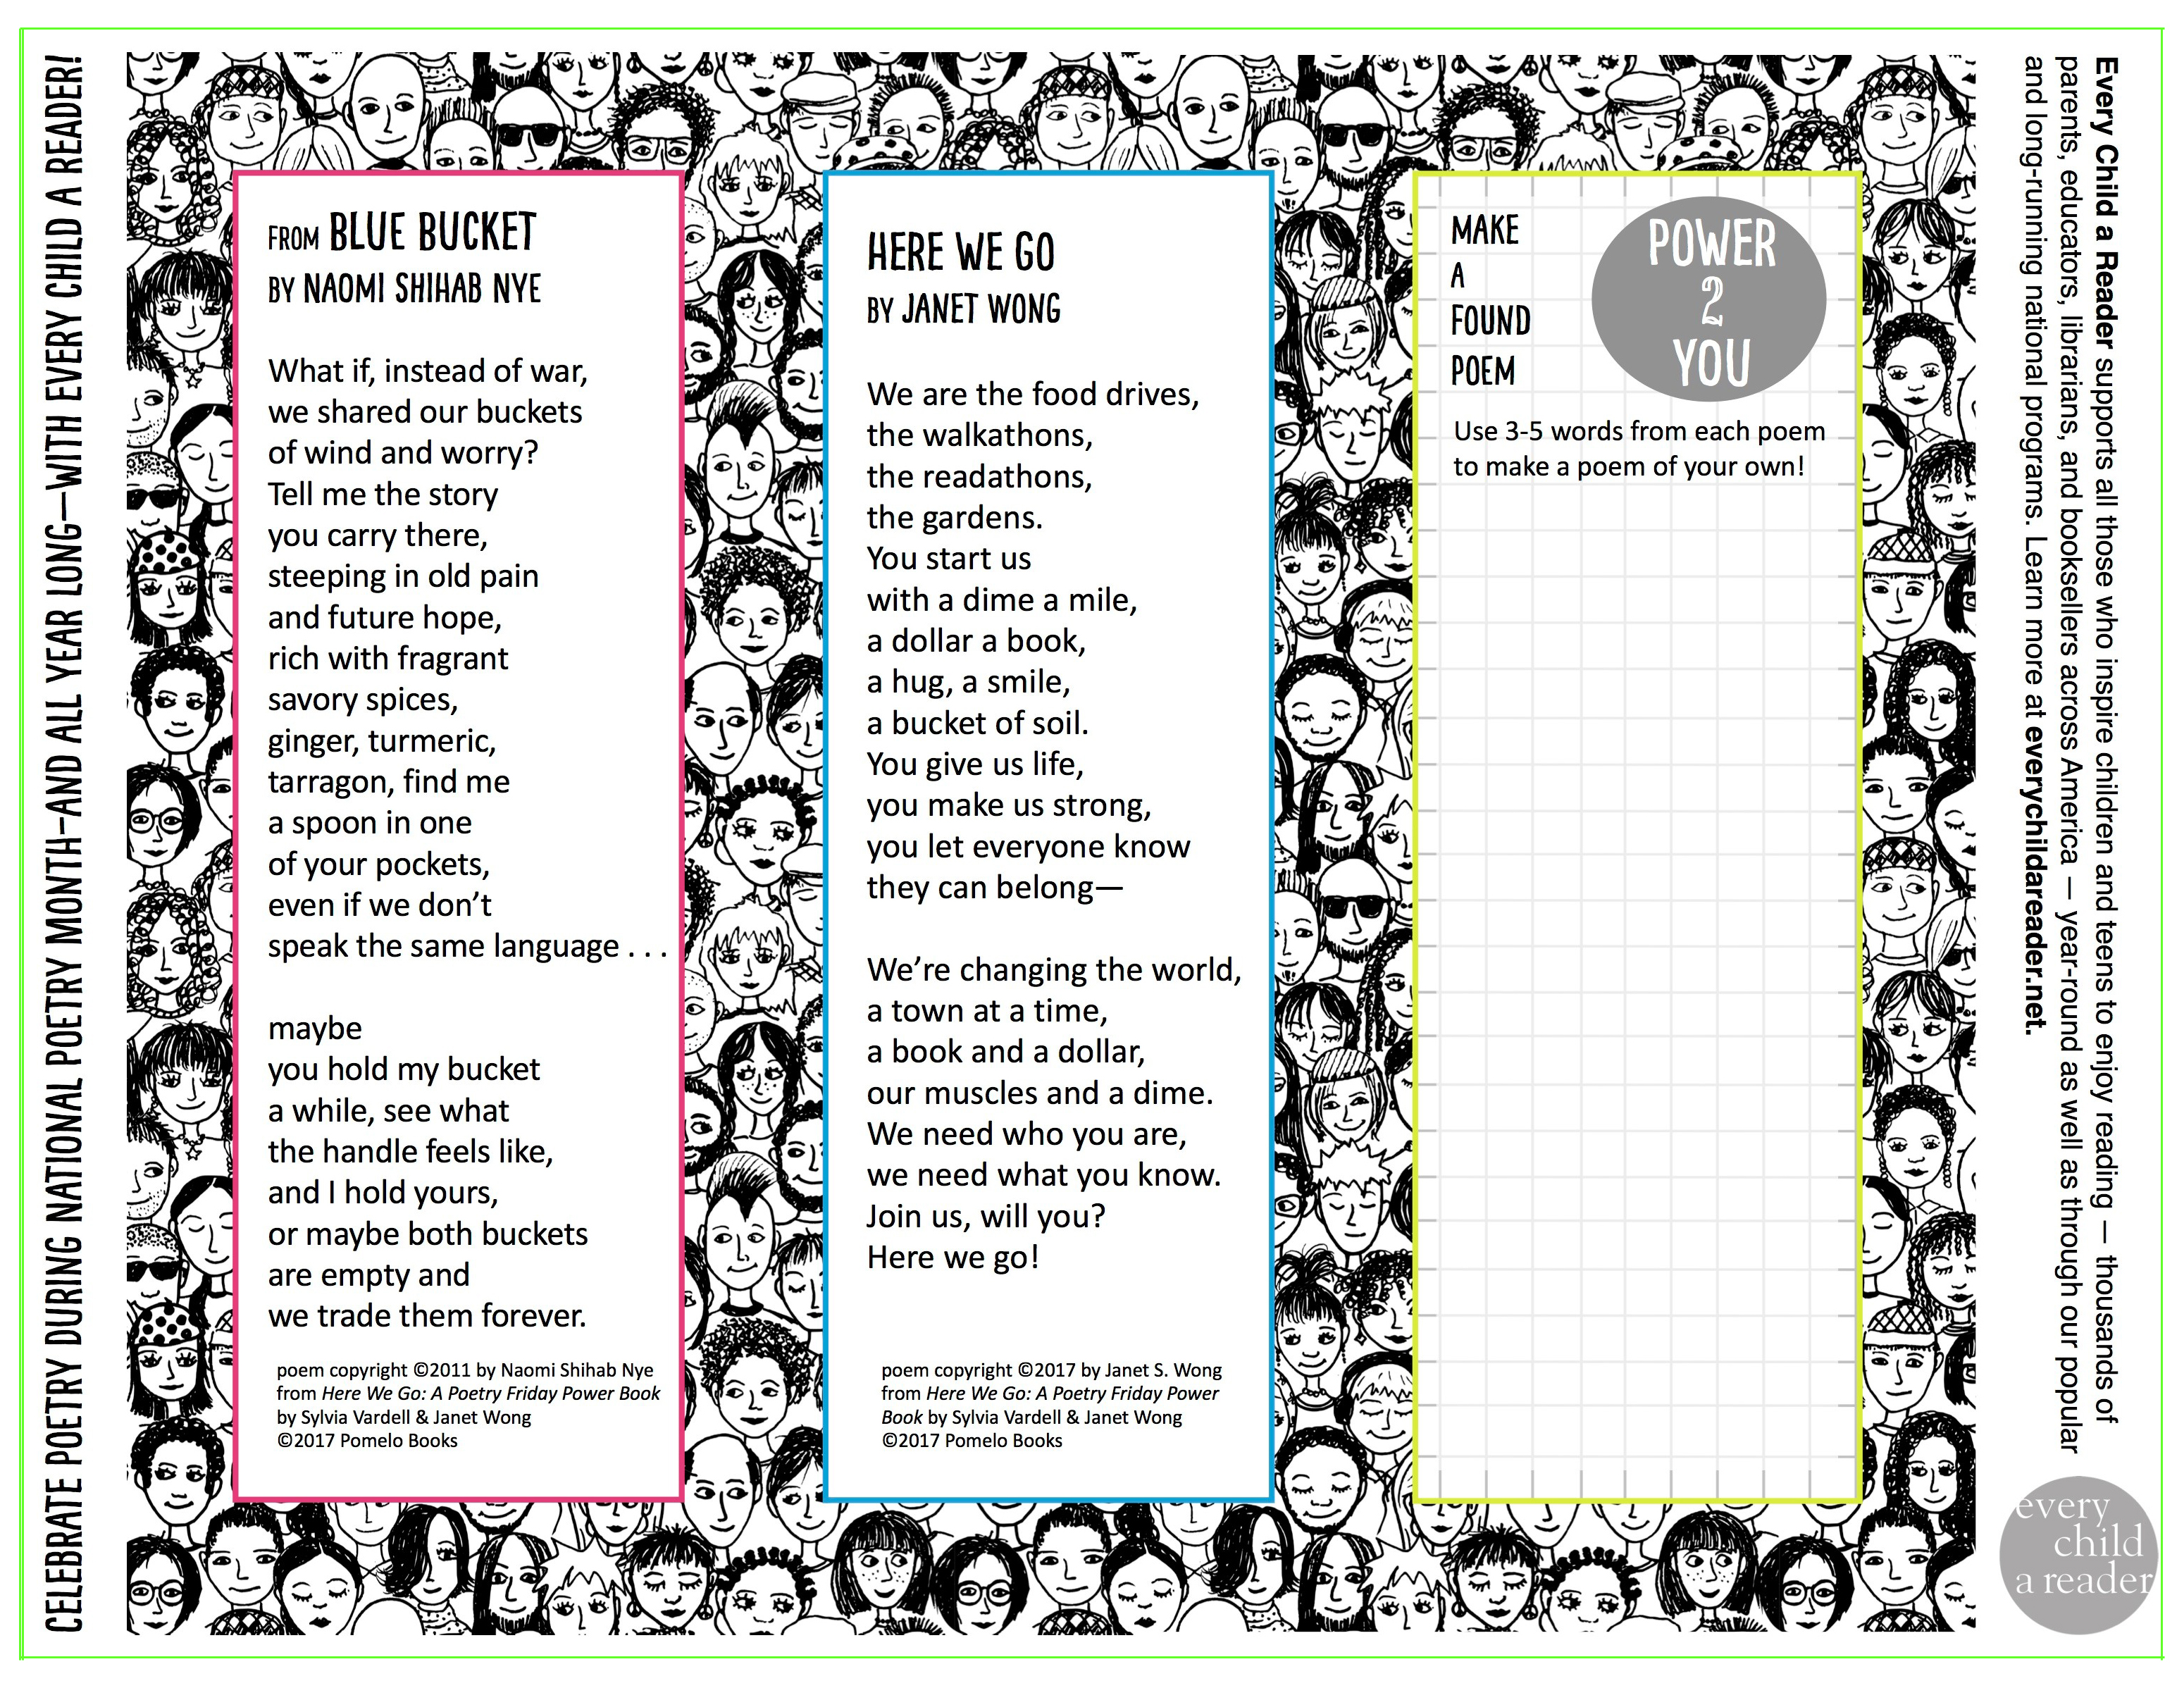 Exclusive Bookmark For National Poetry Month!